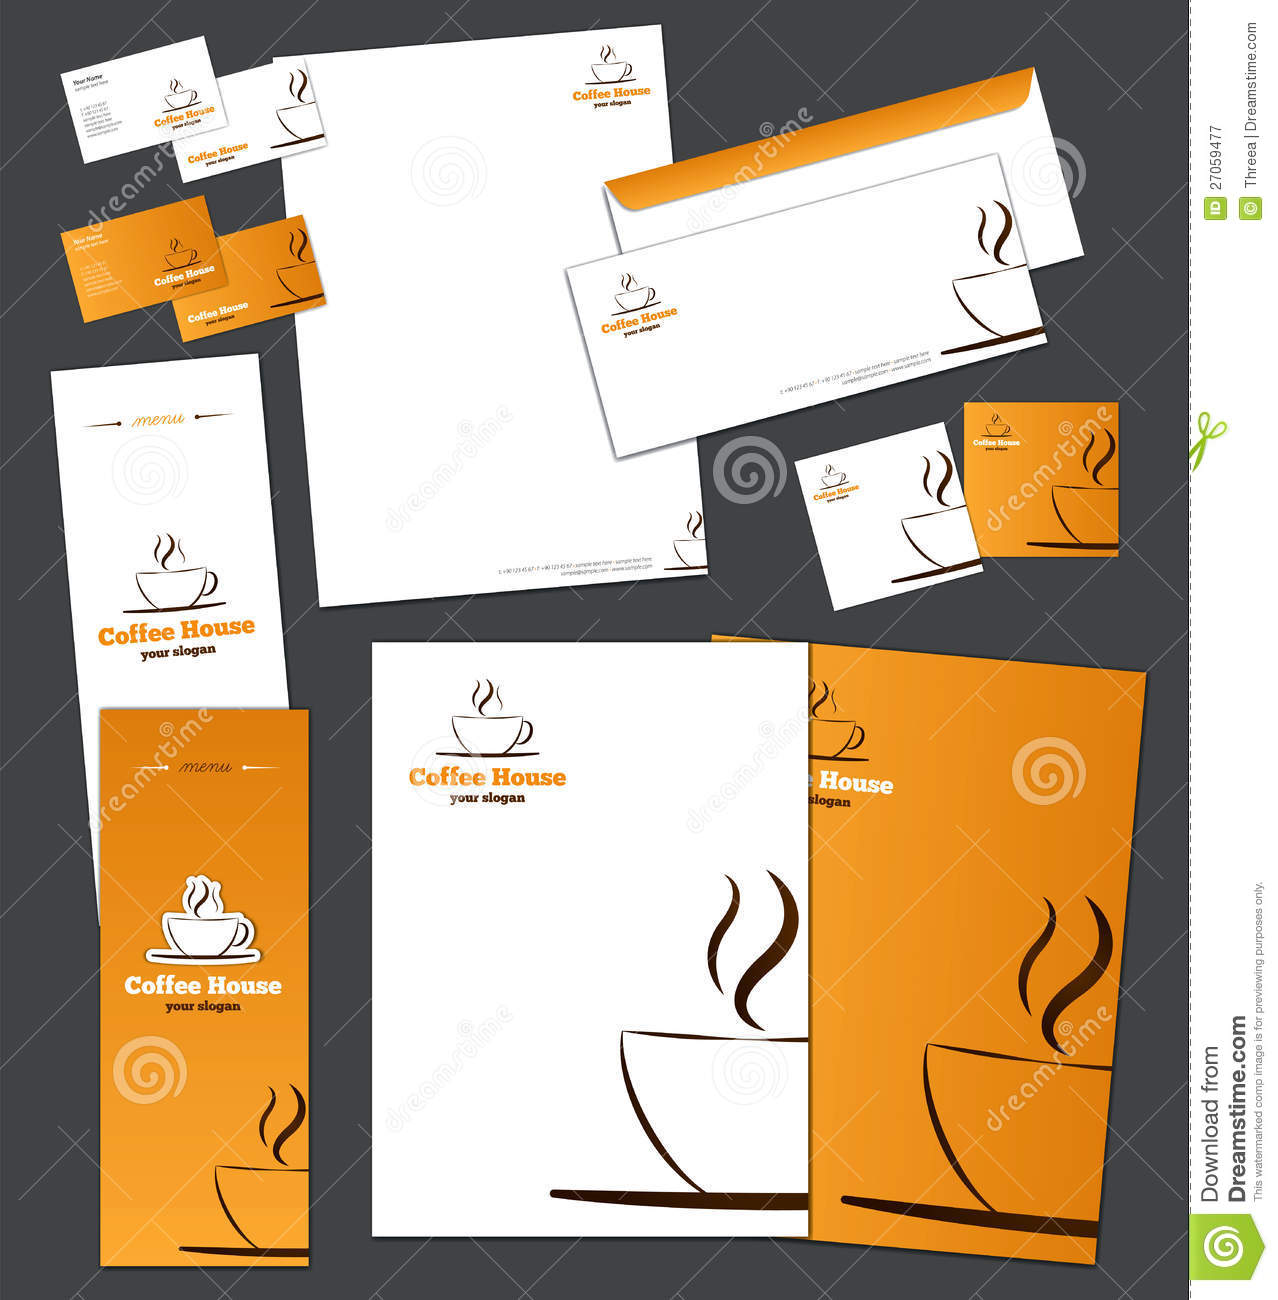 corporate identity template royalty free stock photography image